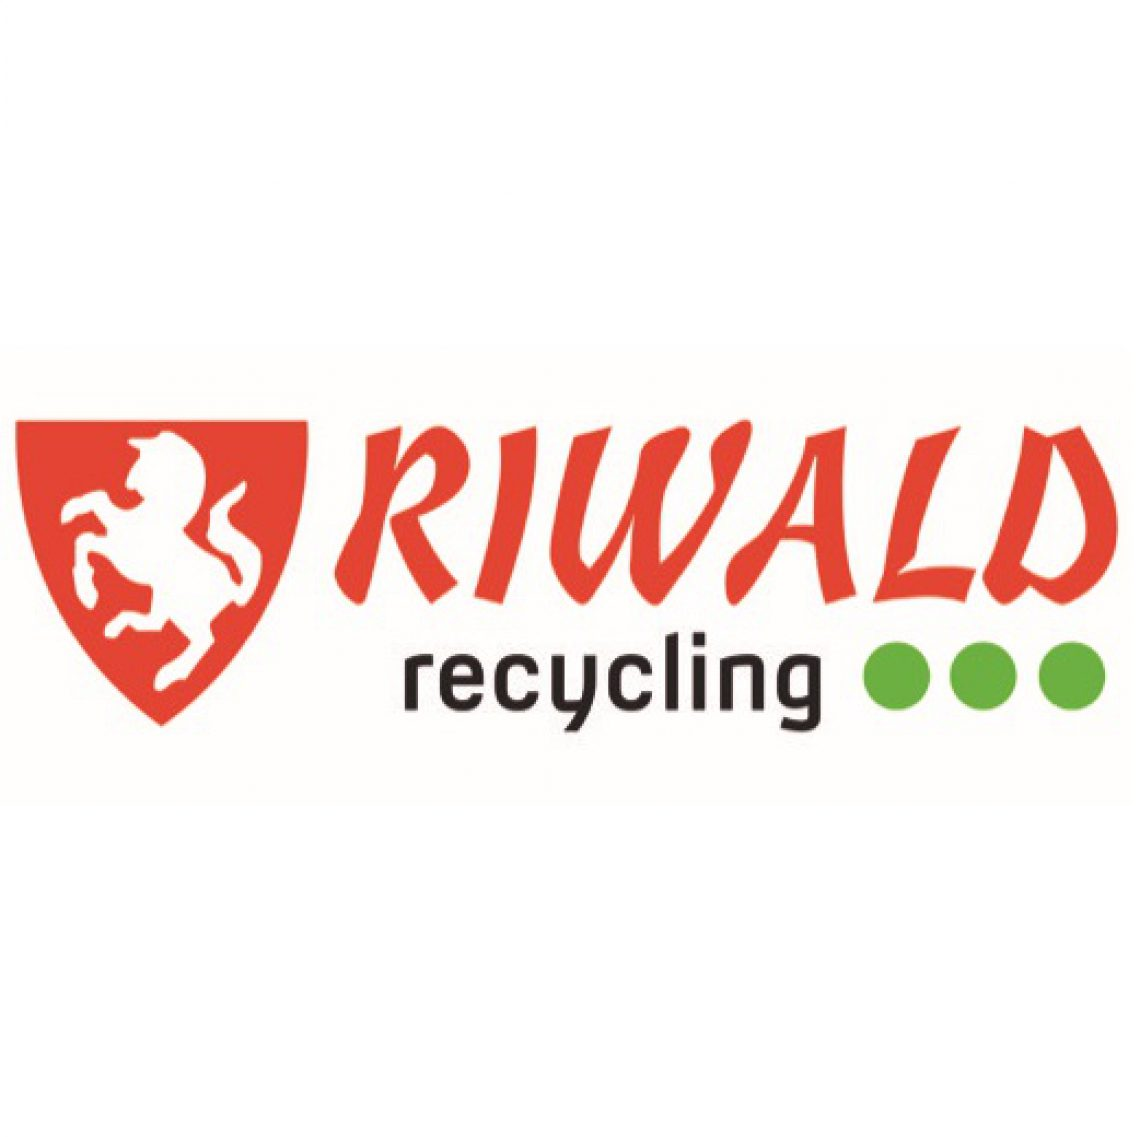 Riwald Recycling